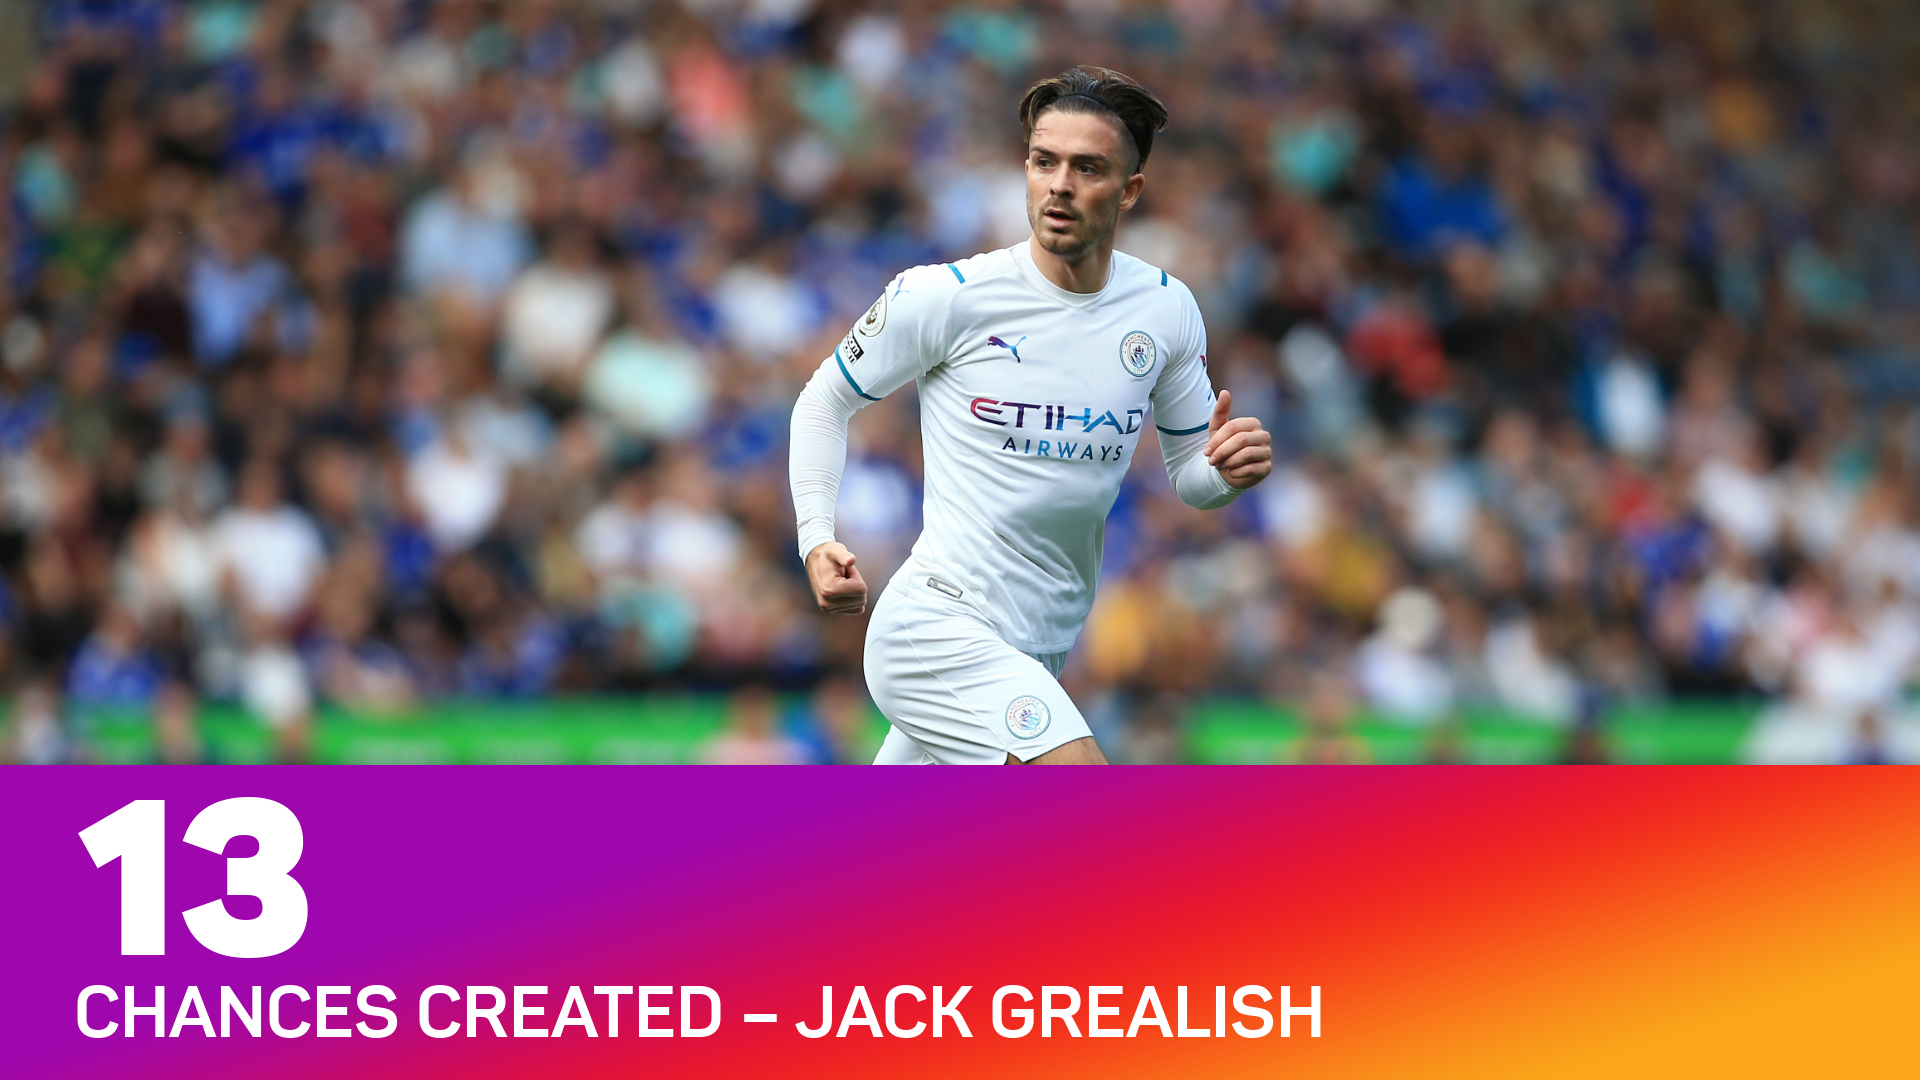 Jack Grealish is already impressing at Manchester City